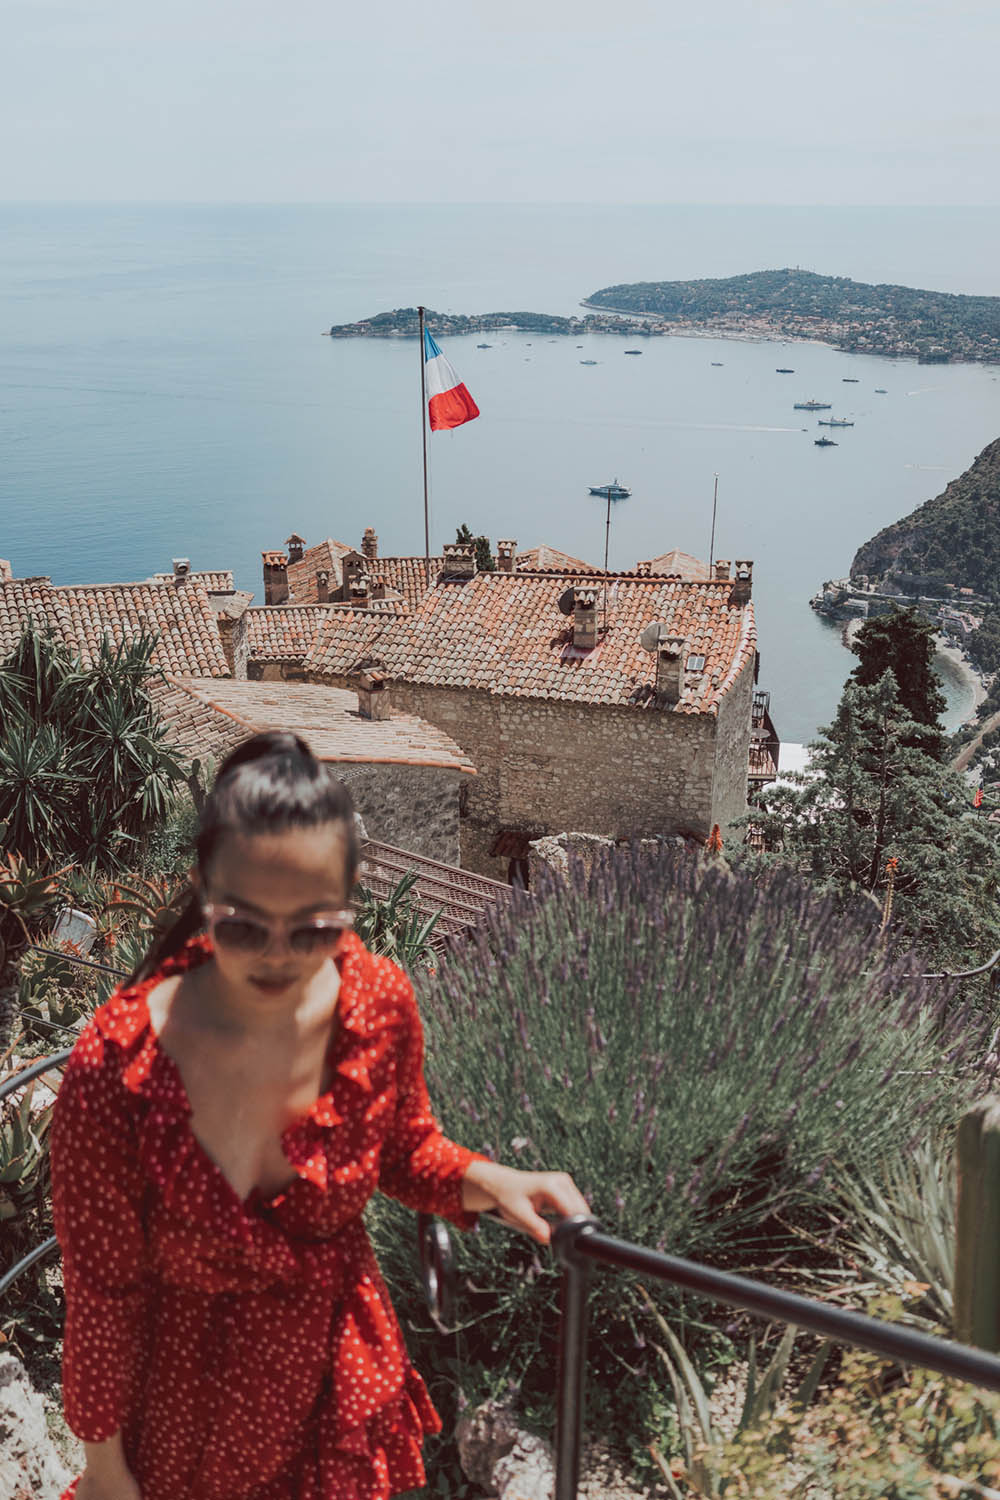 Eze Village France - Day Trip South of France #Europe #France #RoadTrip The Medieval village you need to visit in Provence. Day trip from Nice